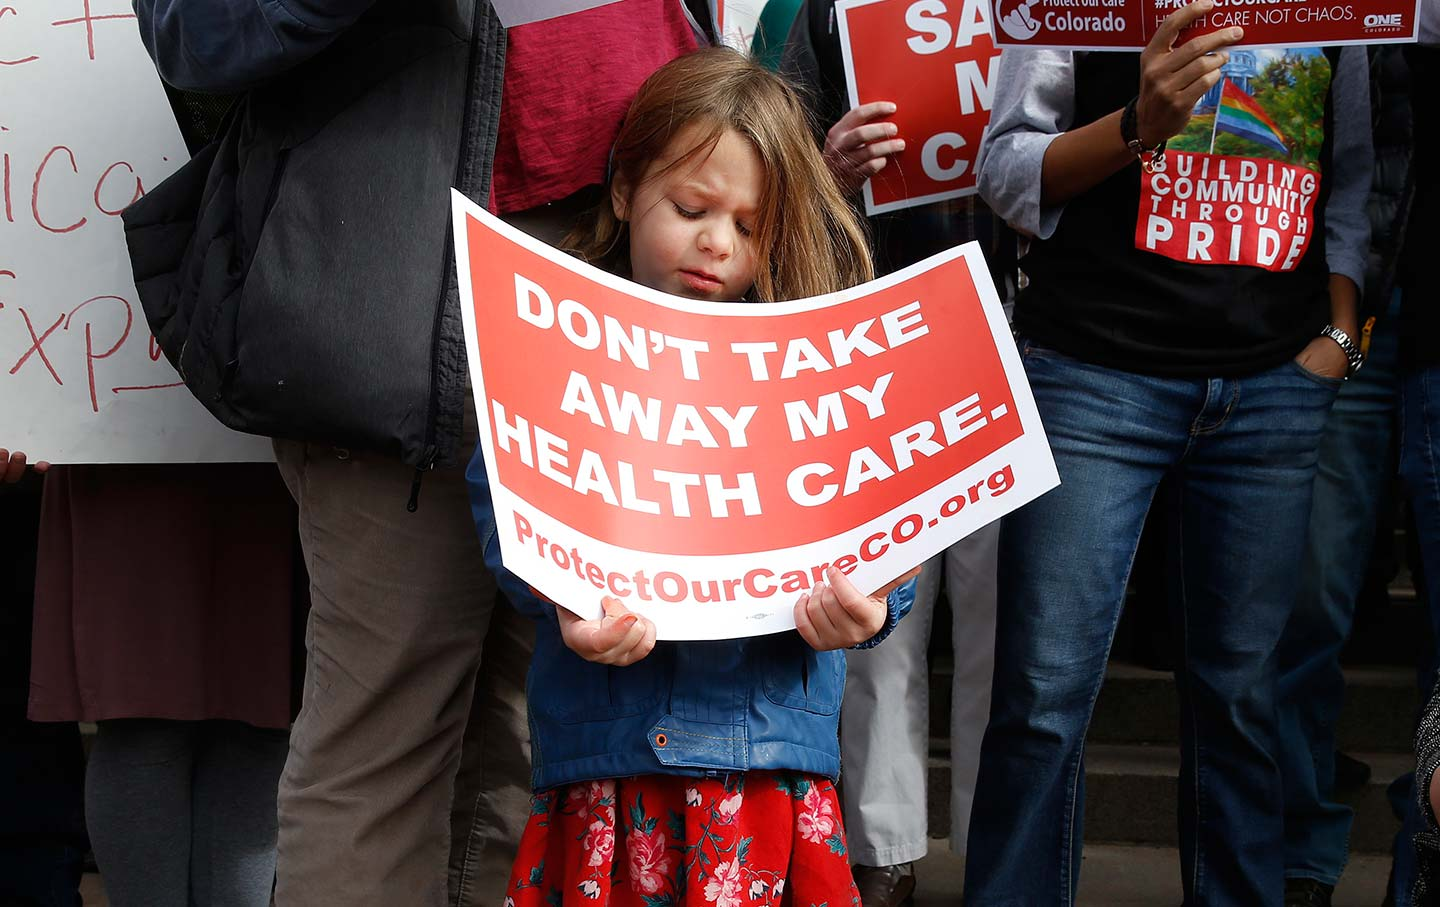 A girl stands holding a sign alongside supporters of the Affordable Care Act at a rally in Denver on Tuesday, January 31, 2017.